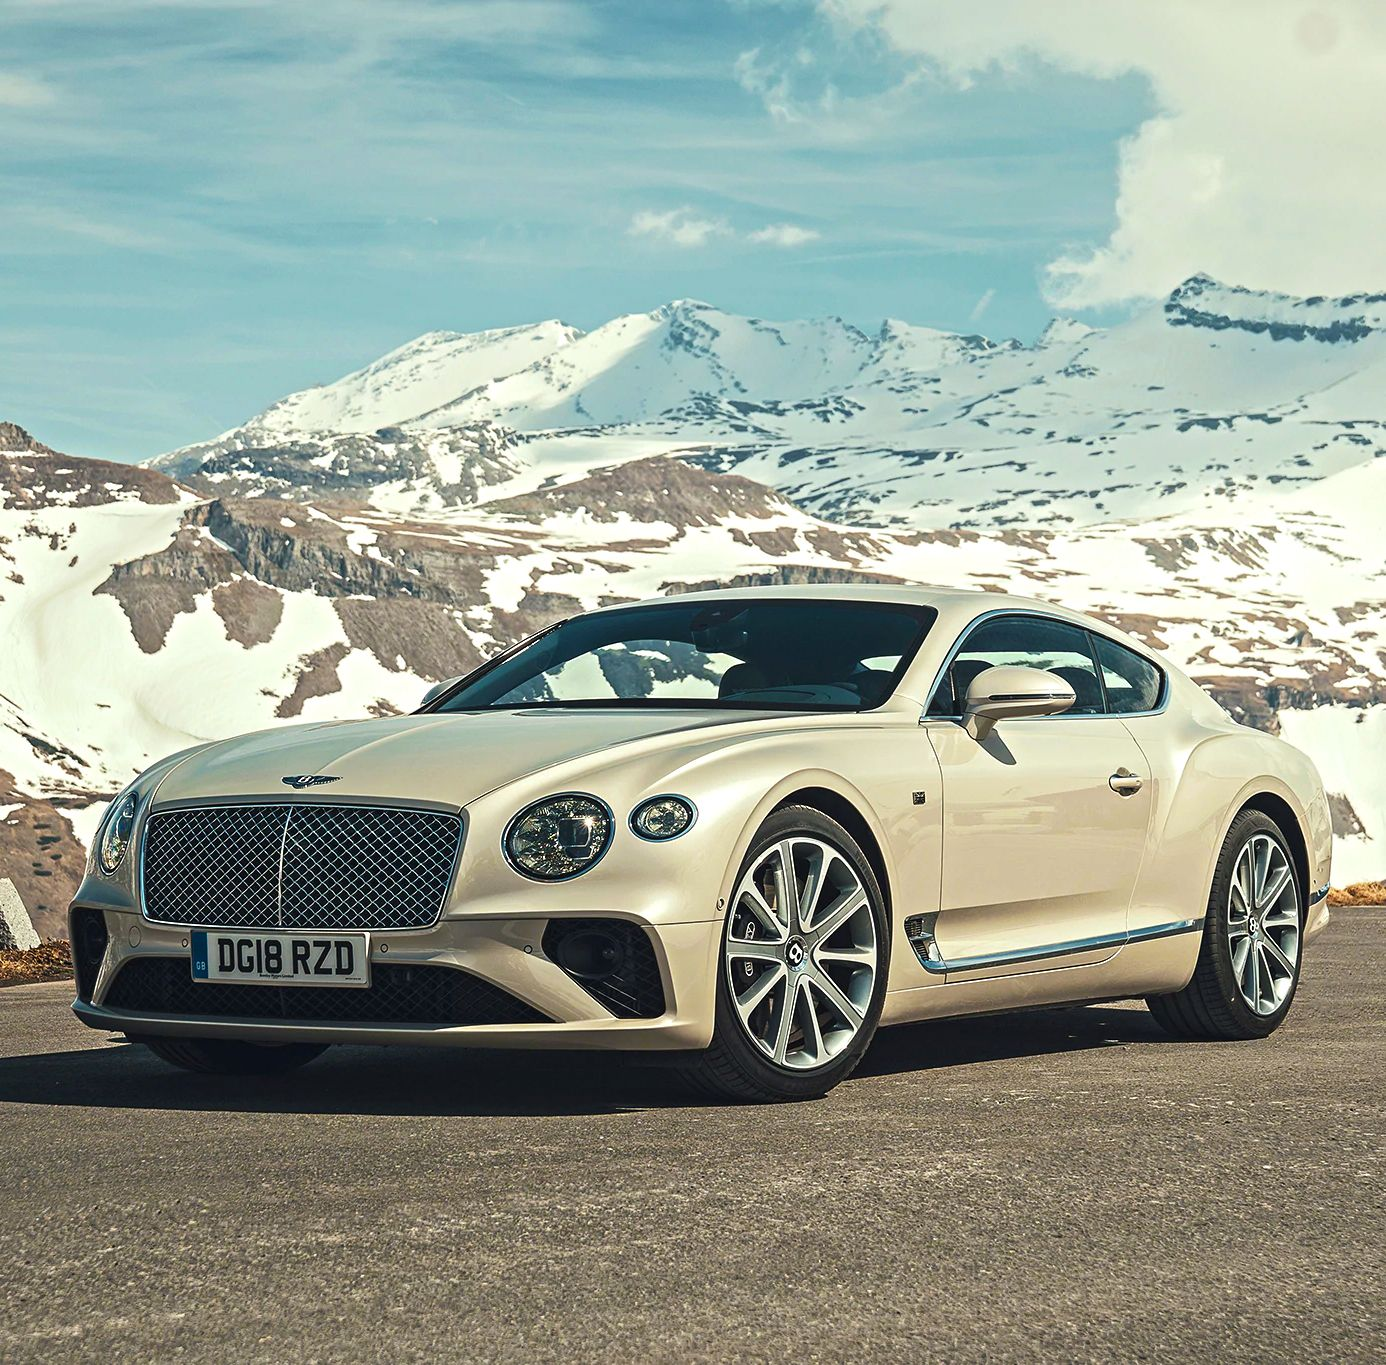 2019 Bentley Continental GT - The MAN